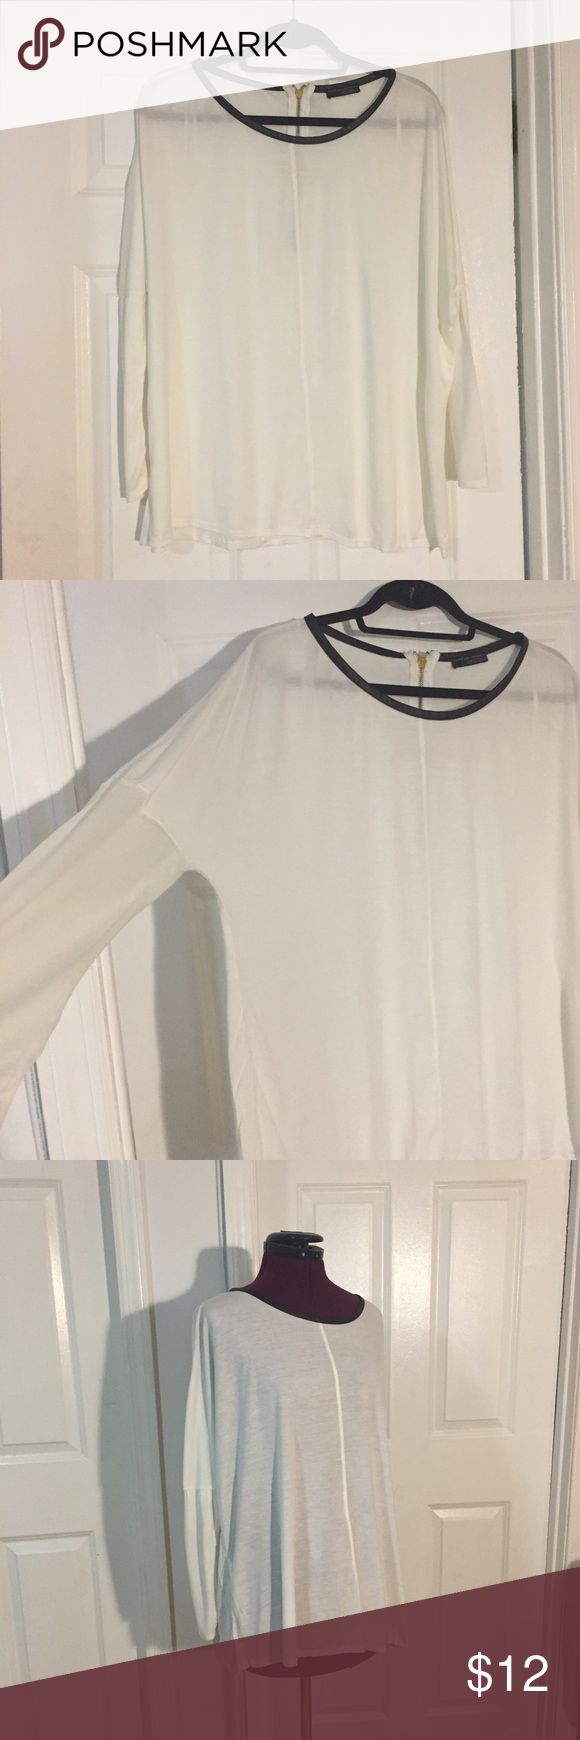 ZARA T-shirt batwing top with faux leather trim Great Condition - barely worn  Drapey cut, arms are cut tight at bottom  faux leather contrast details at back zip and around the neckline gold zipper  Smoke Free Household Zara Tops Tunics